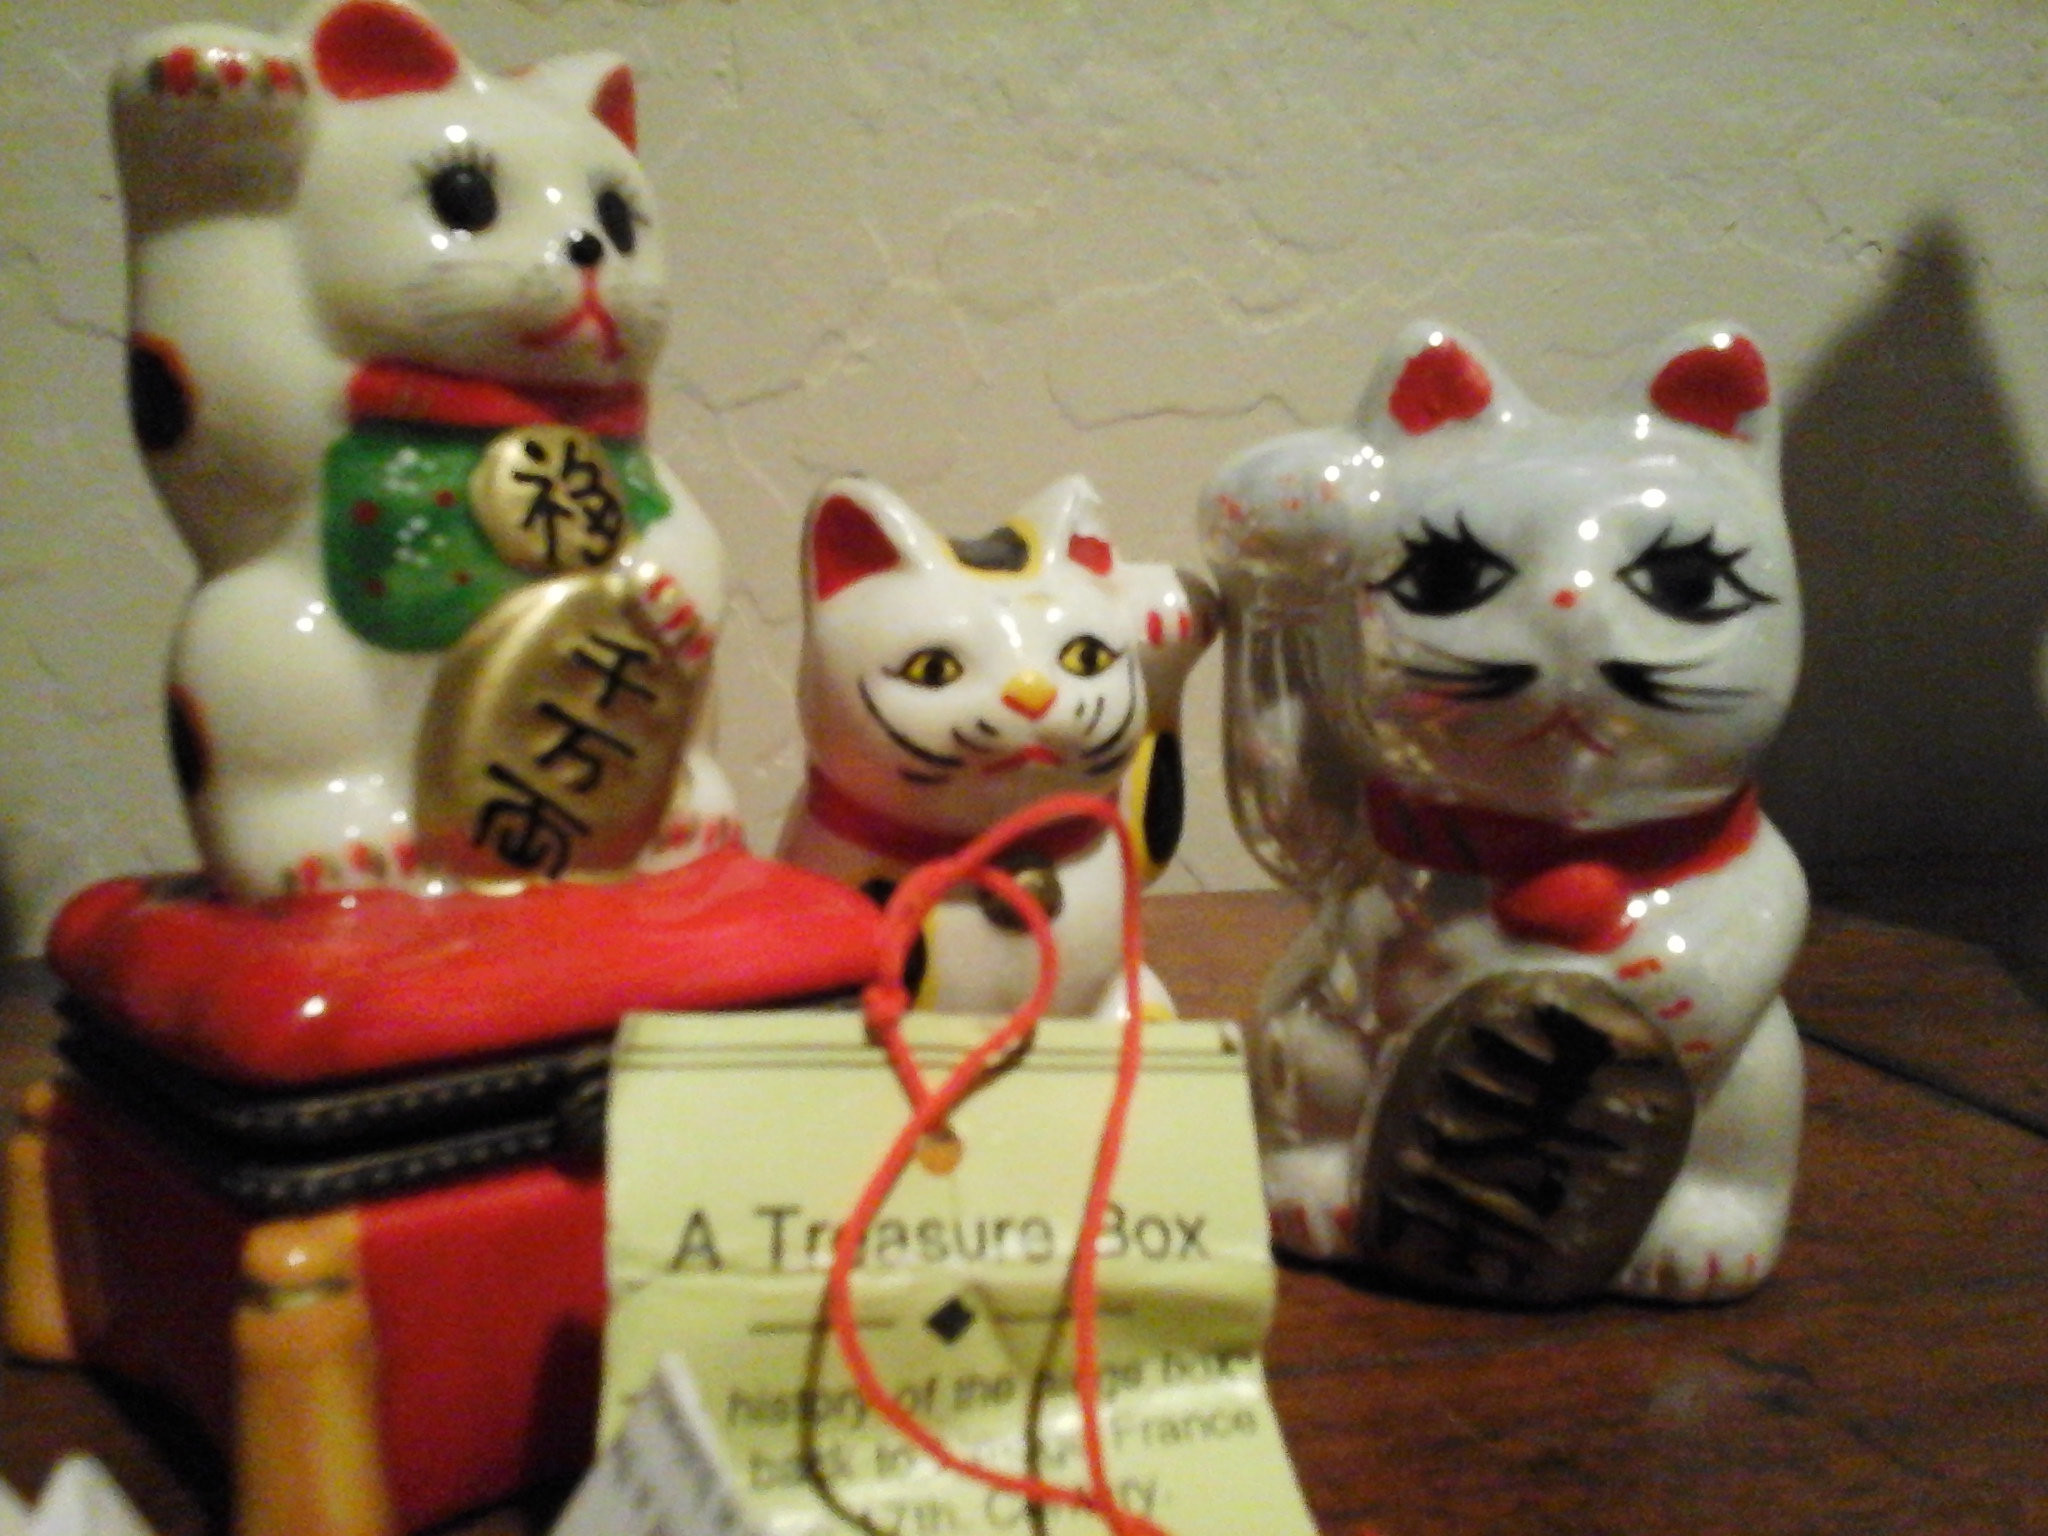 2048x1536 Maneki neko japanese beckoning cat japanese figurine etsy jpg   Chinese lucky cat statues wallpaper